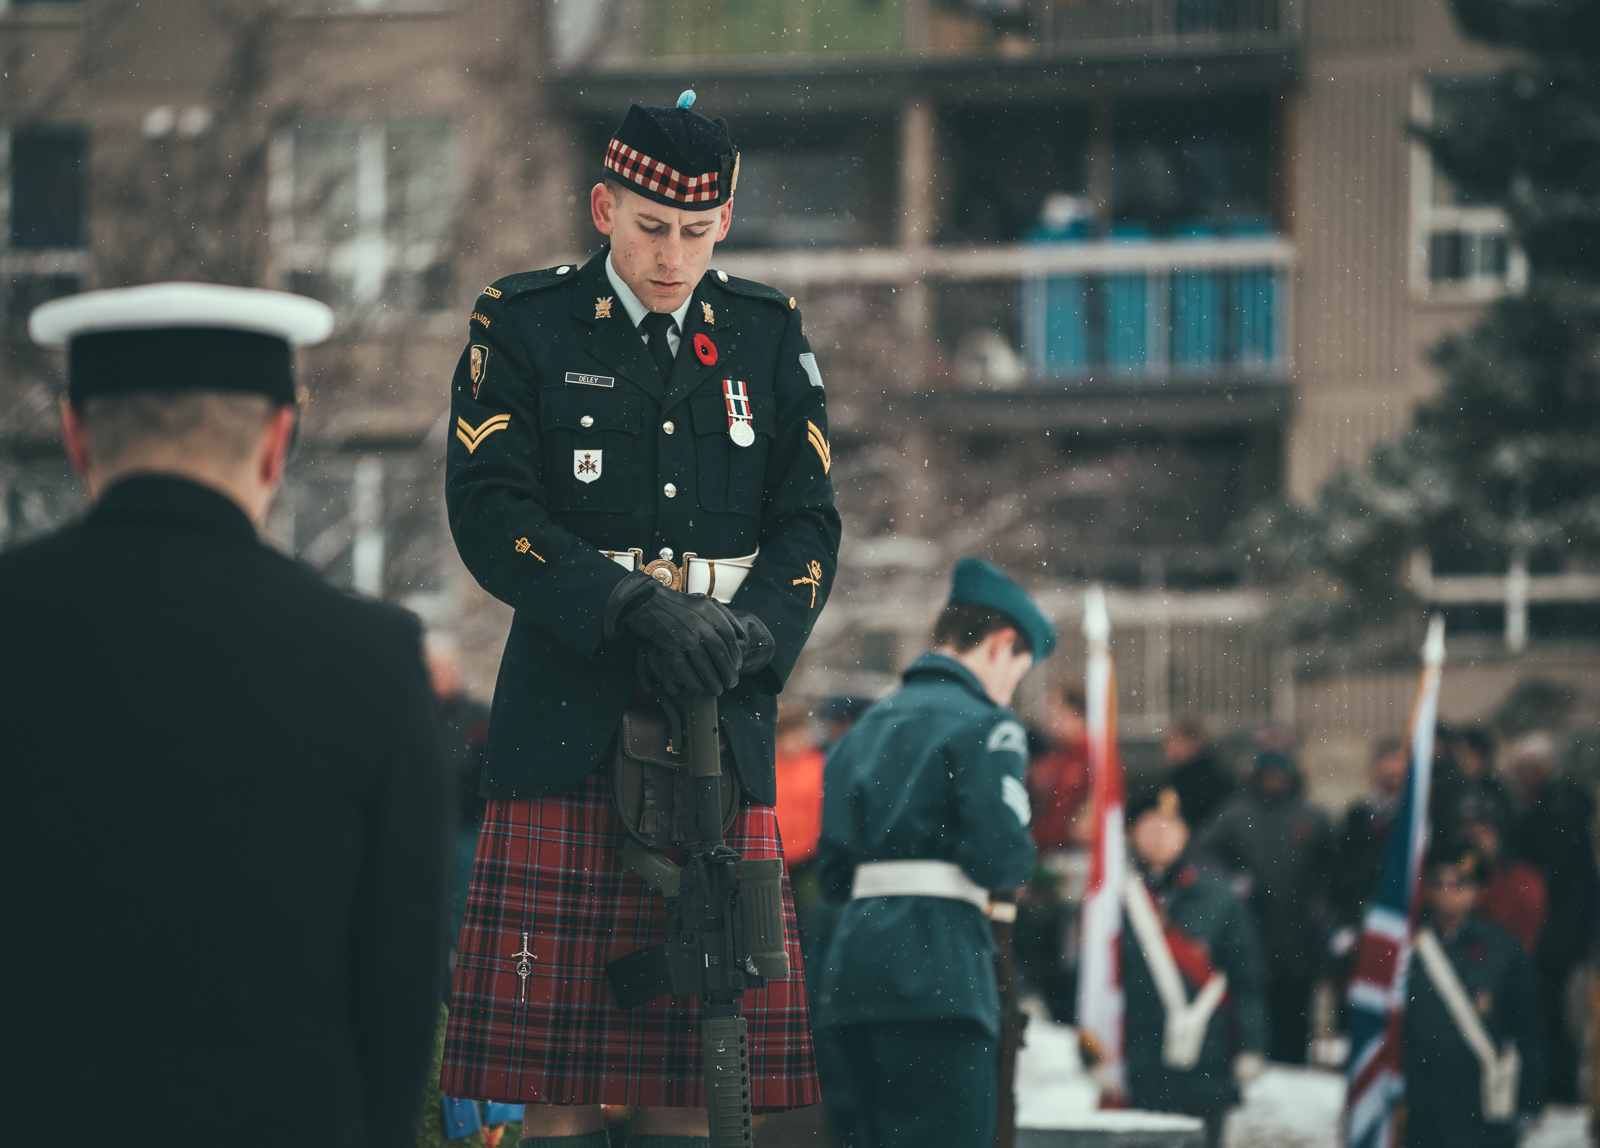 remembrance-day-2018-blog-43.jpg